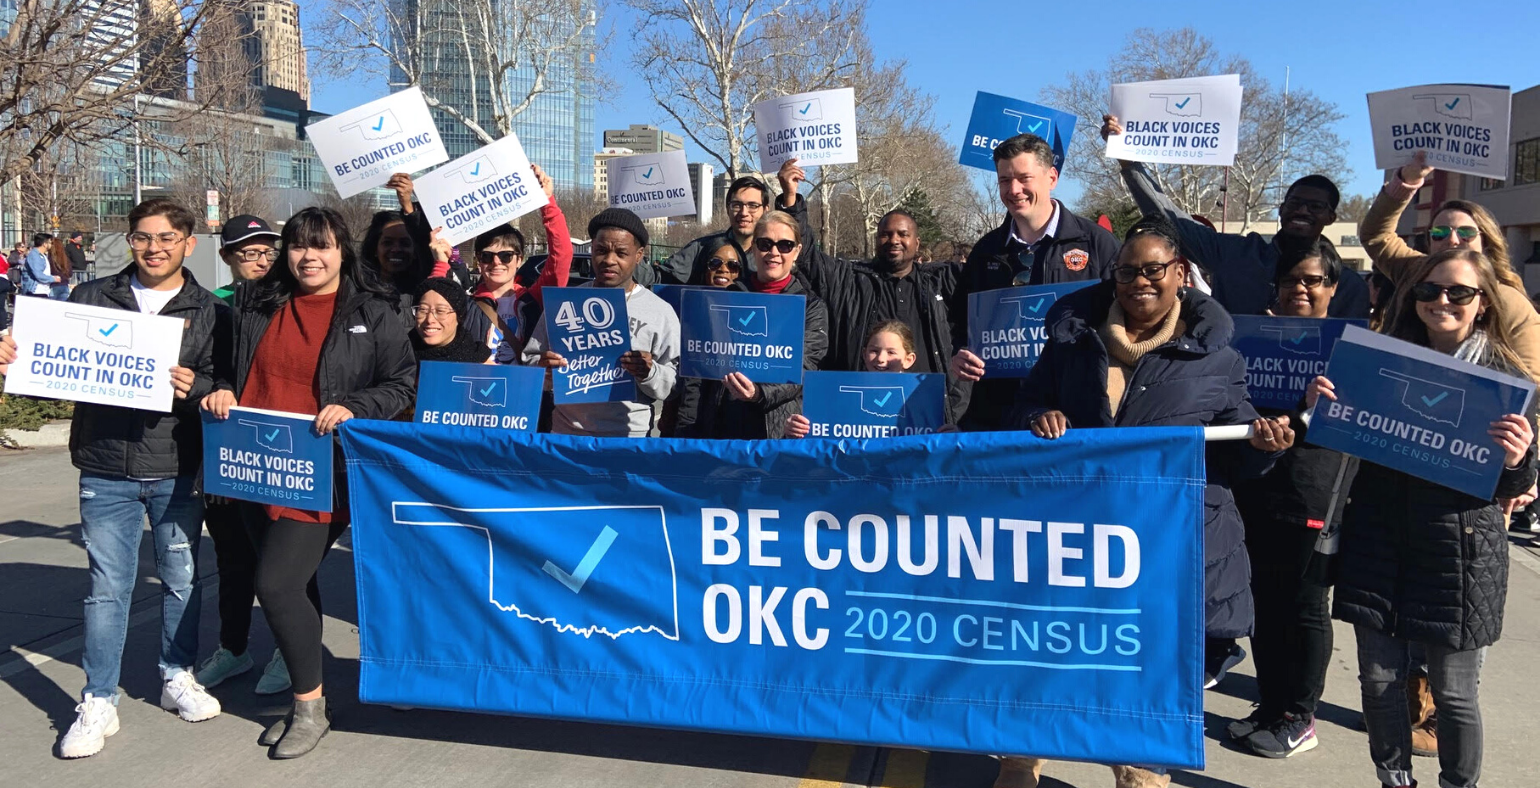 okc martin luther king jr. day parade